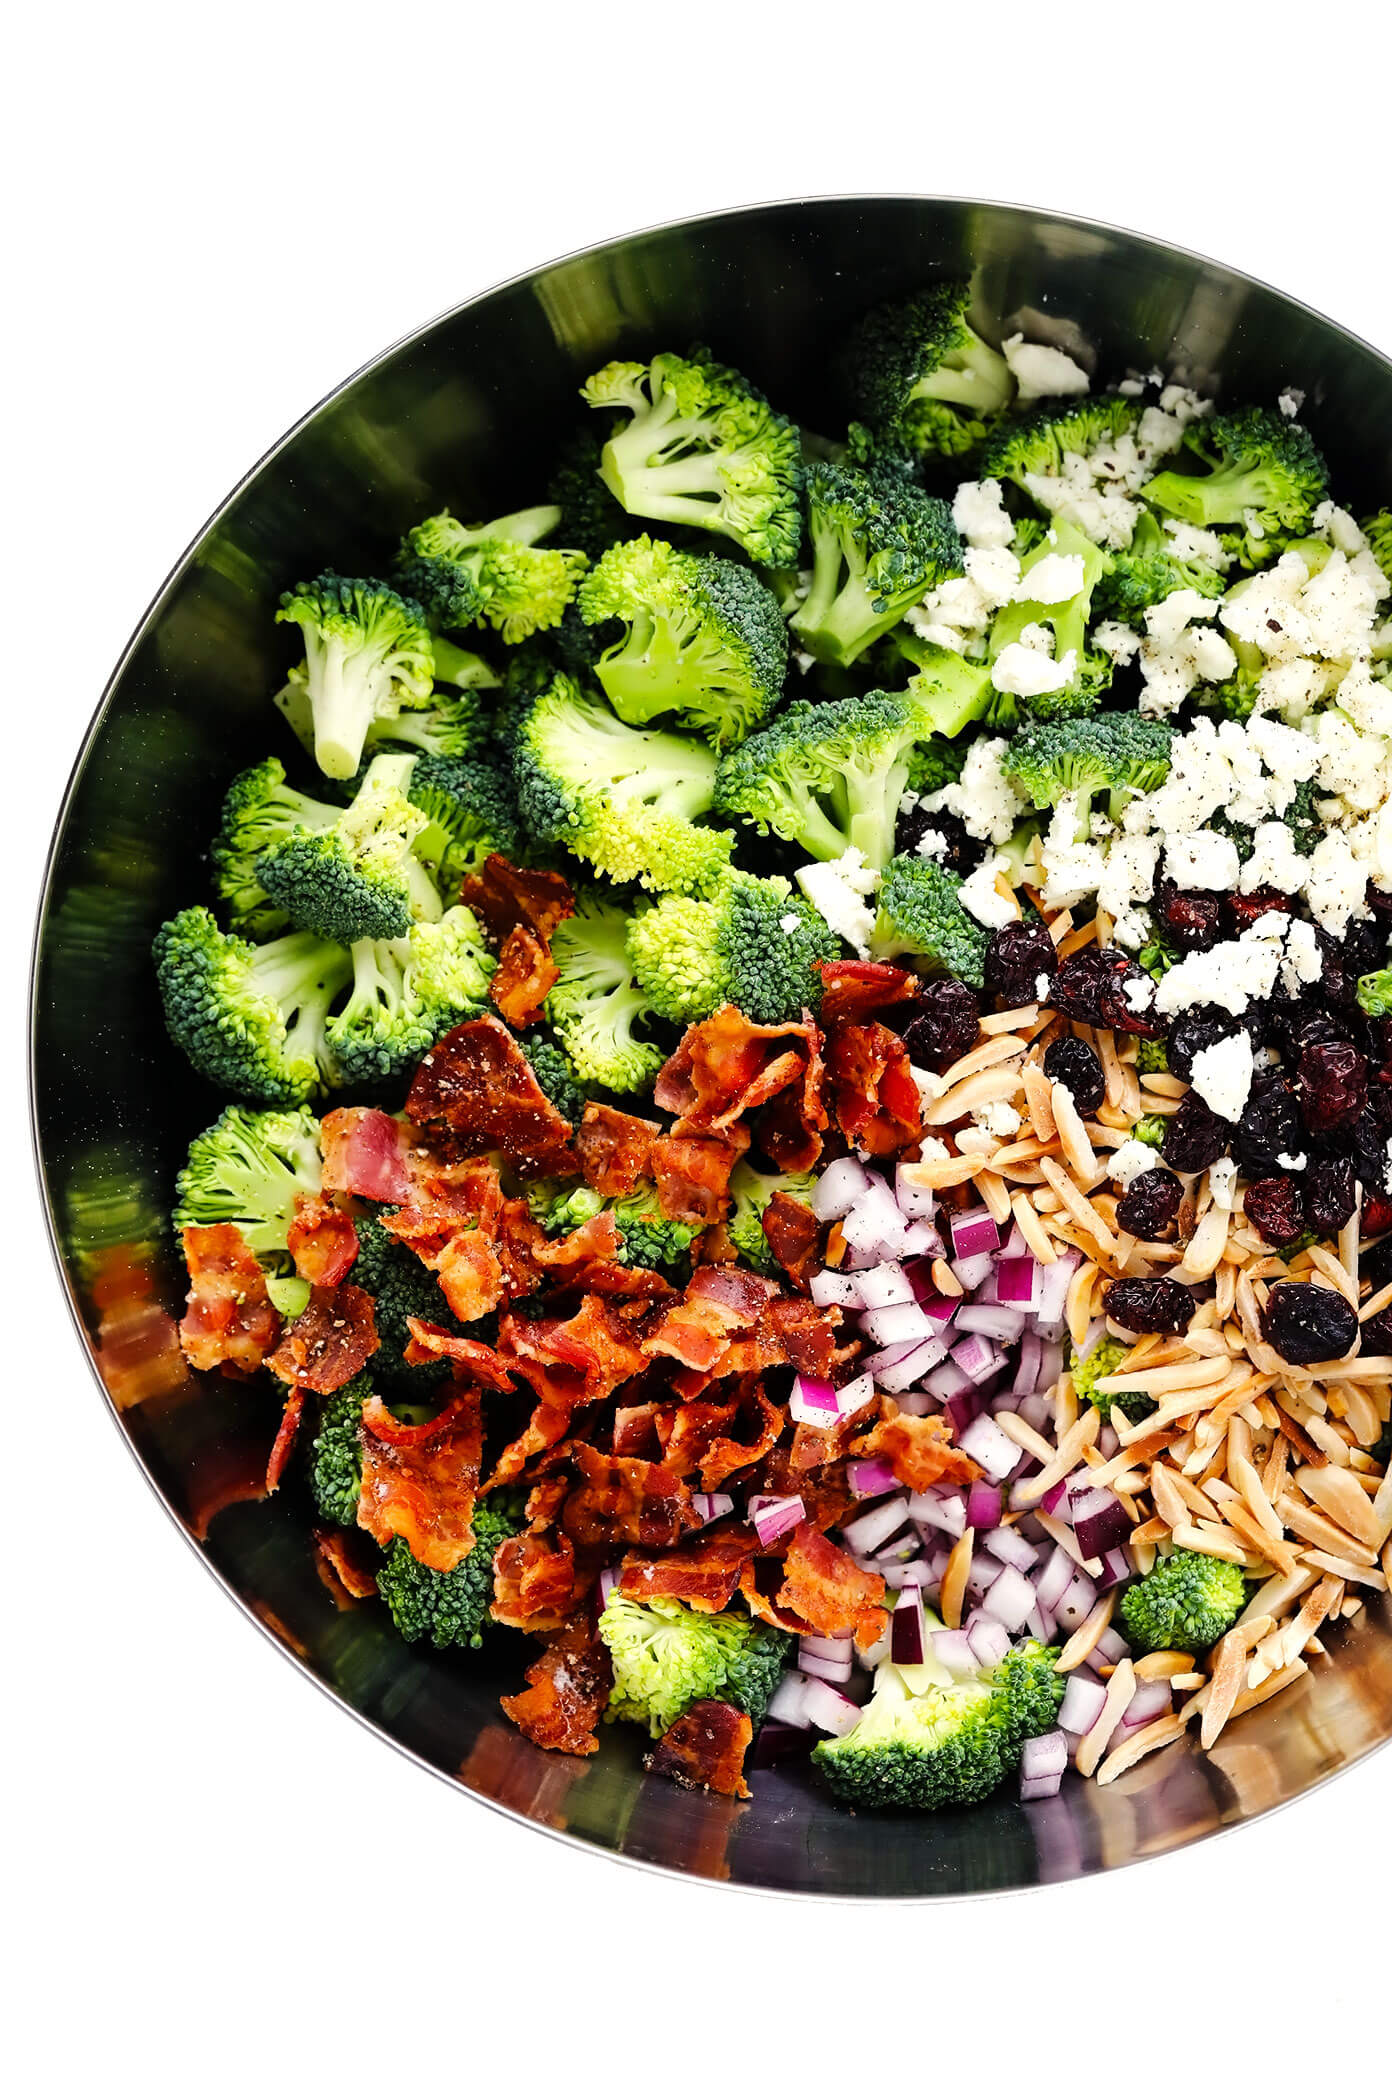 Broccoli Salad Ingredients In Bowl - Broccoli Florets, Bacon, Red Onion, Toasted Almonds, Dried Cranberries and Feta Cheese